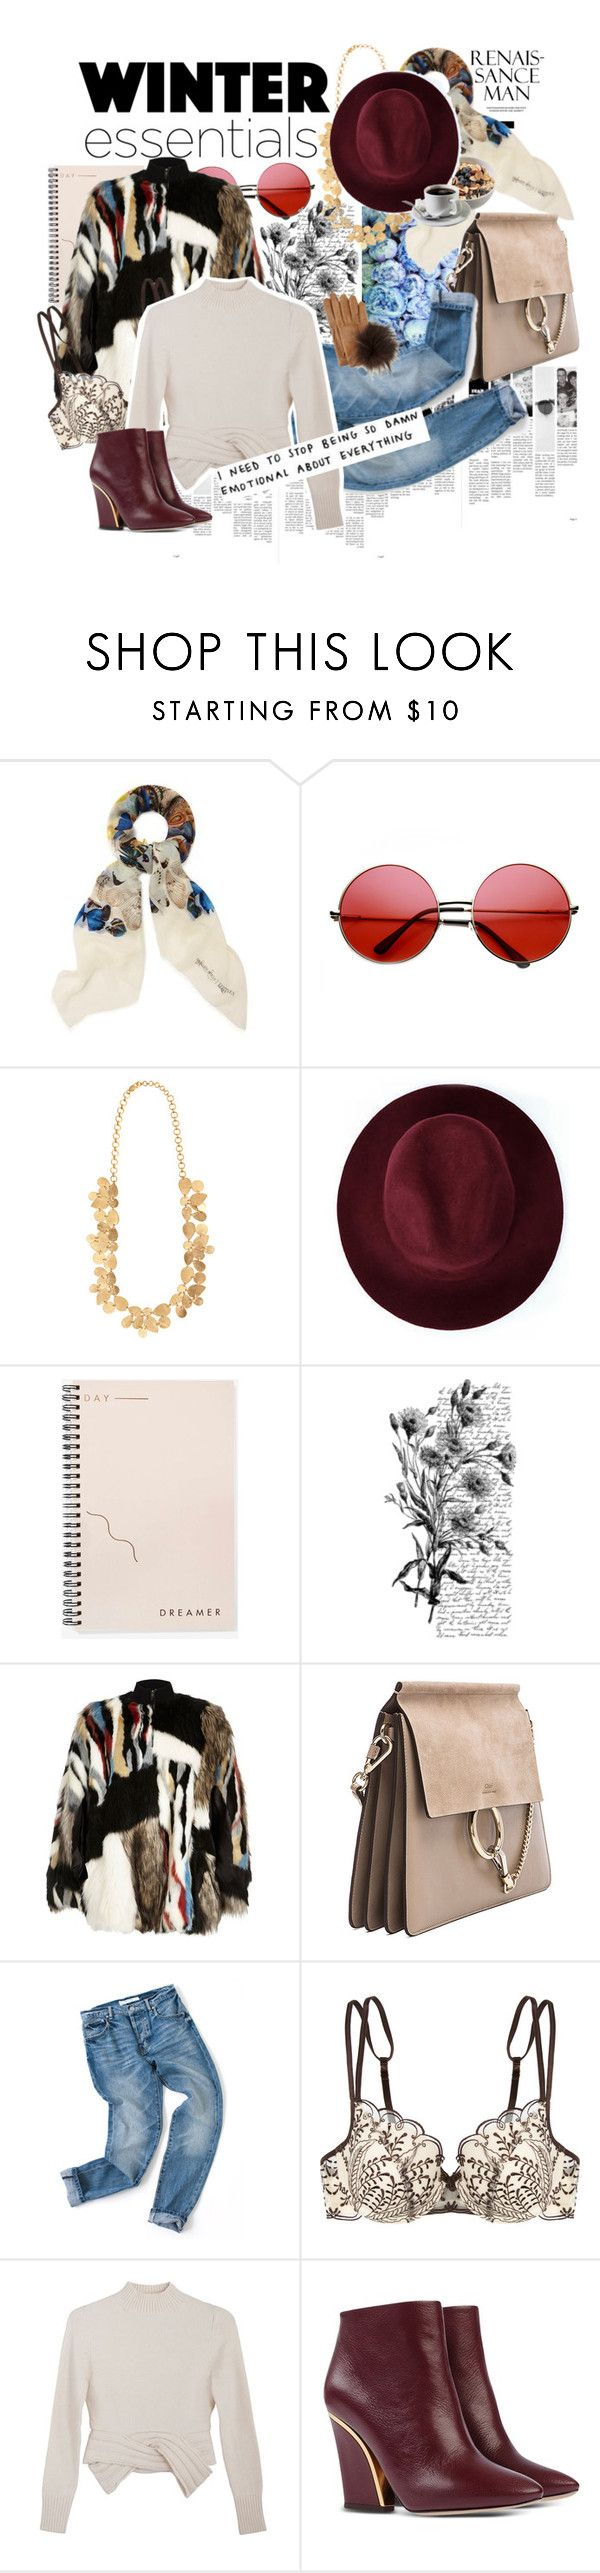 """Cold!!"" by santita ❤ liked on Polyvore featuring Alexander McQueen, INDIE HAIR, Zoja, Redopin, Bing Bang, Pennyblack, River Island, Elle Macpherson Intimates, Maryam Nassir Zadeh and Chloé"